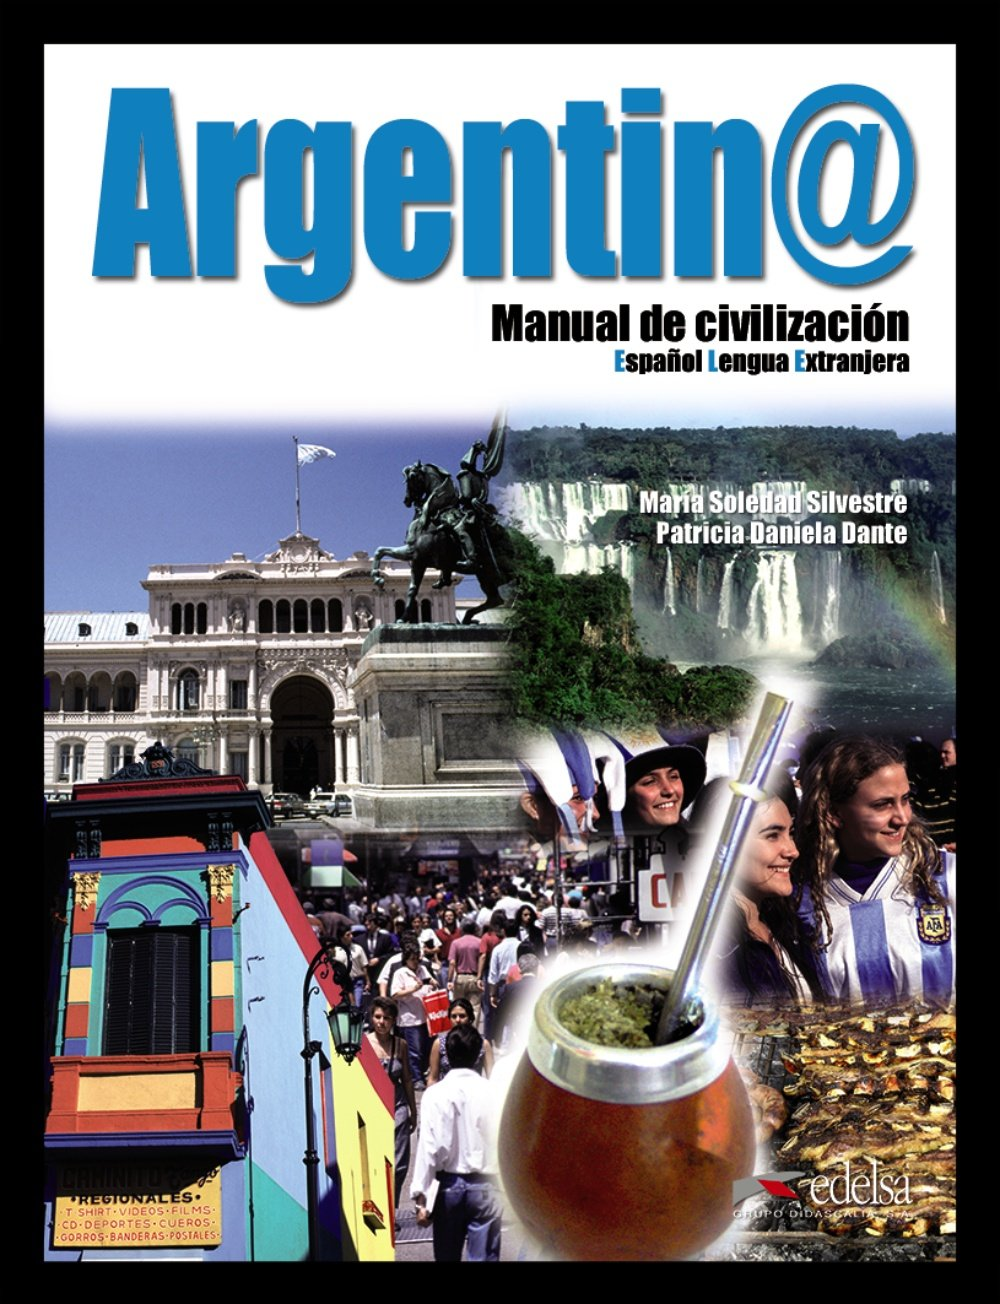 Argentina manual de civilizacion - libro+cd audio (Spanish Edition)